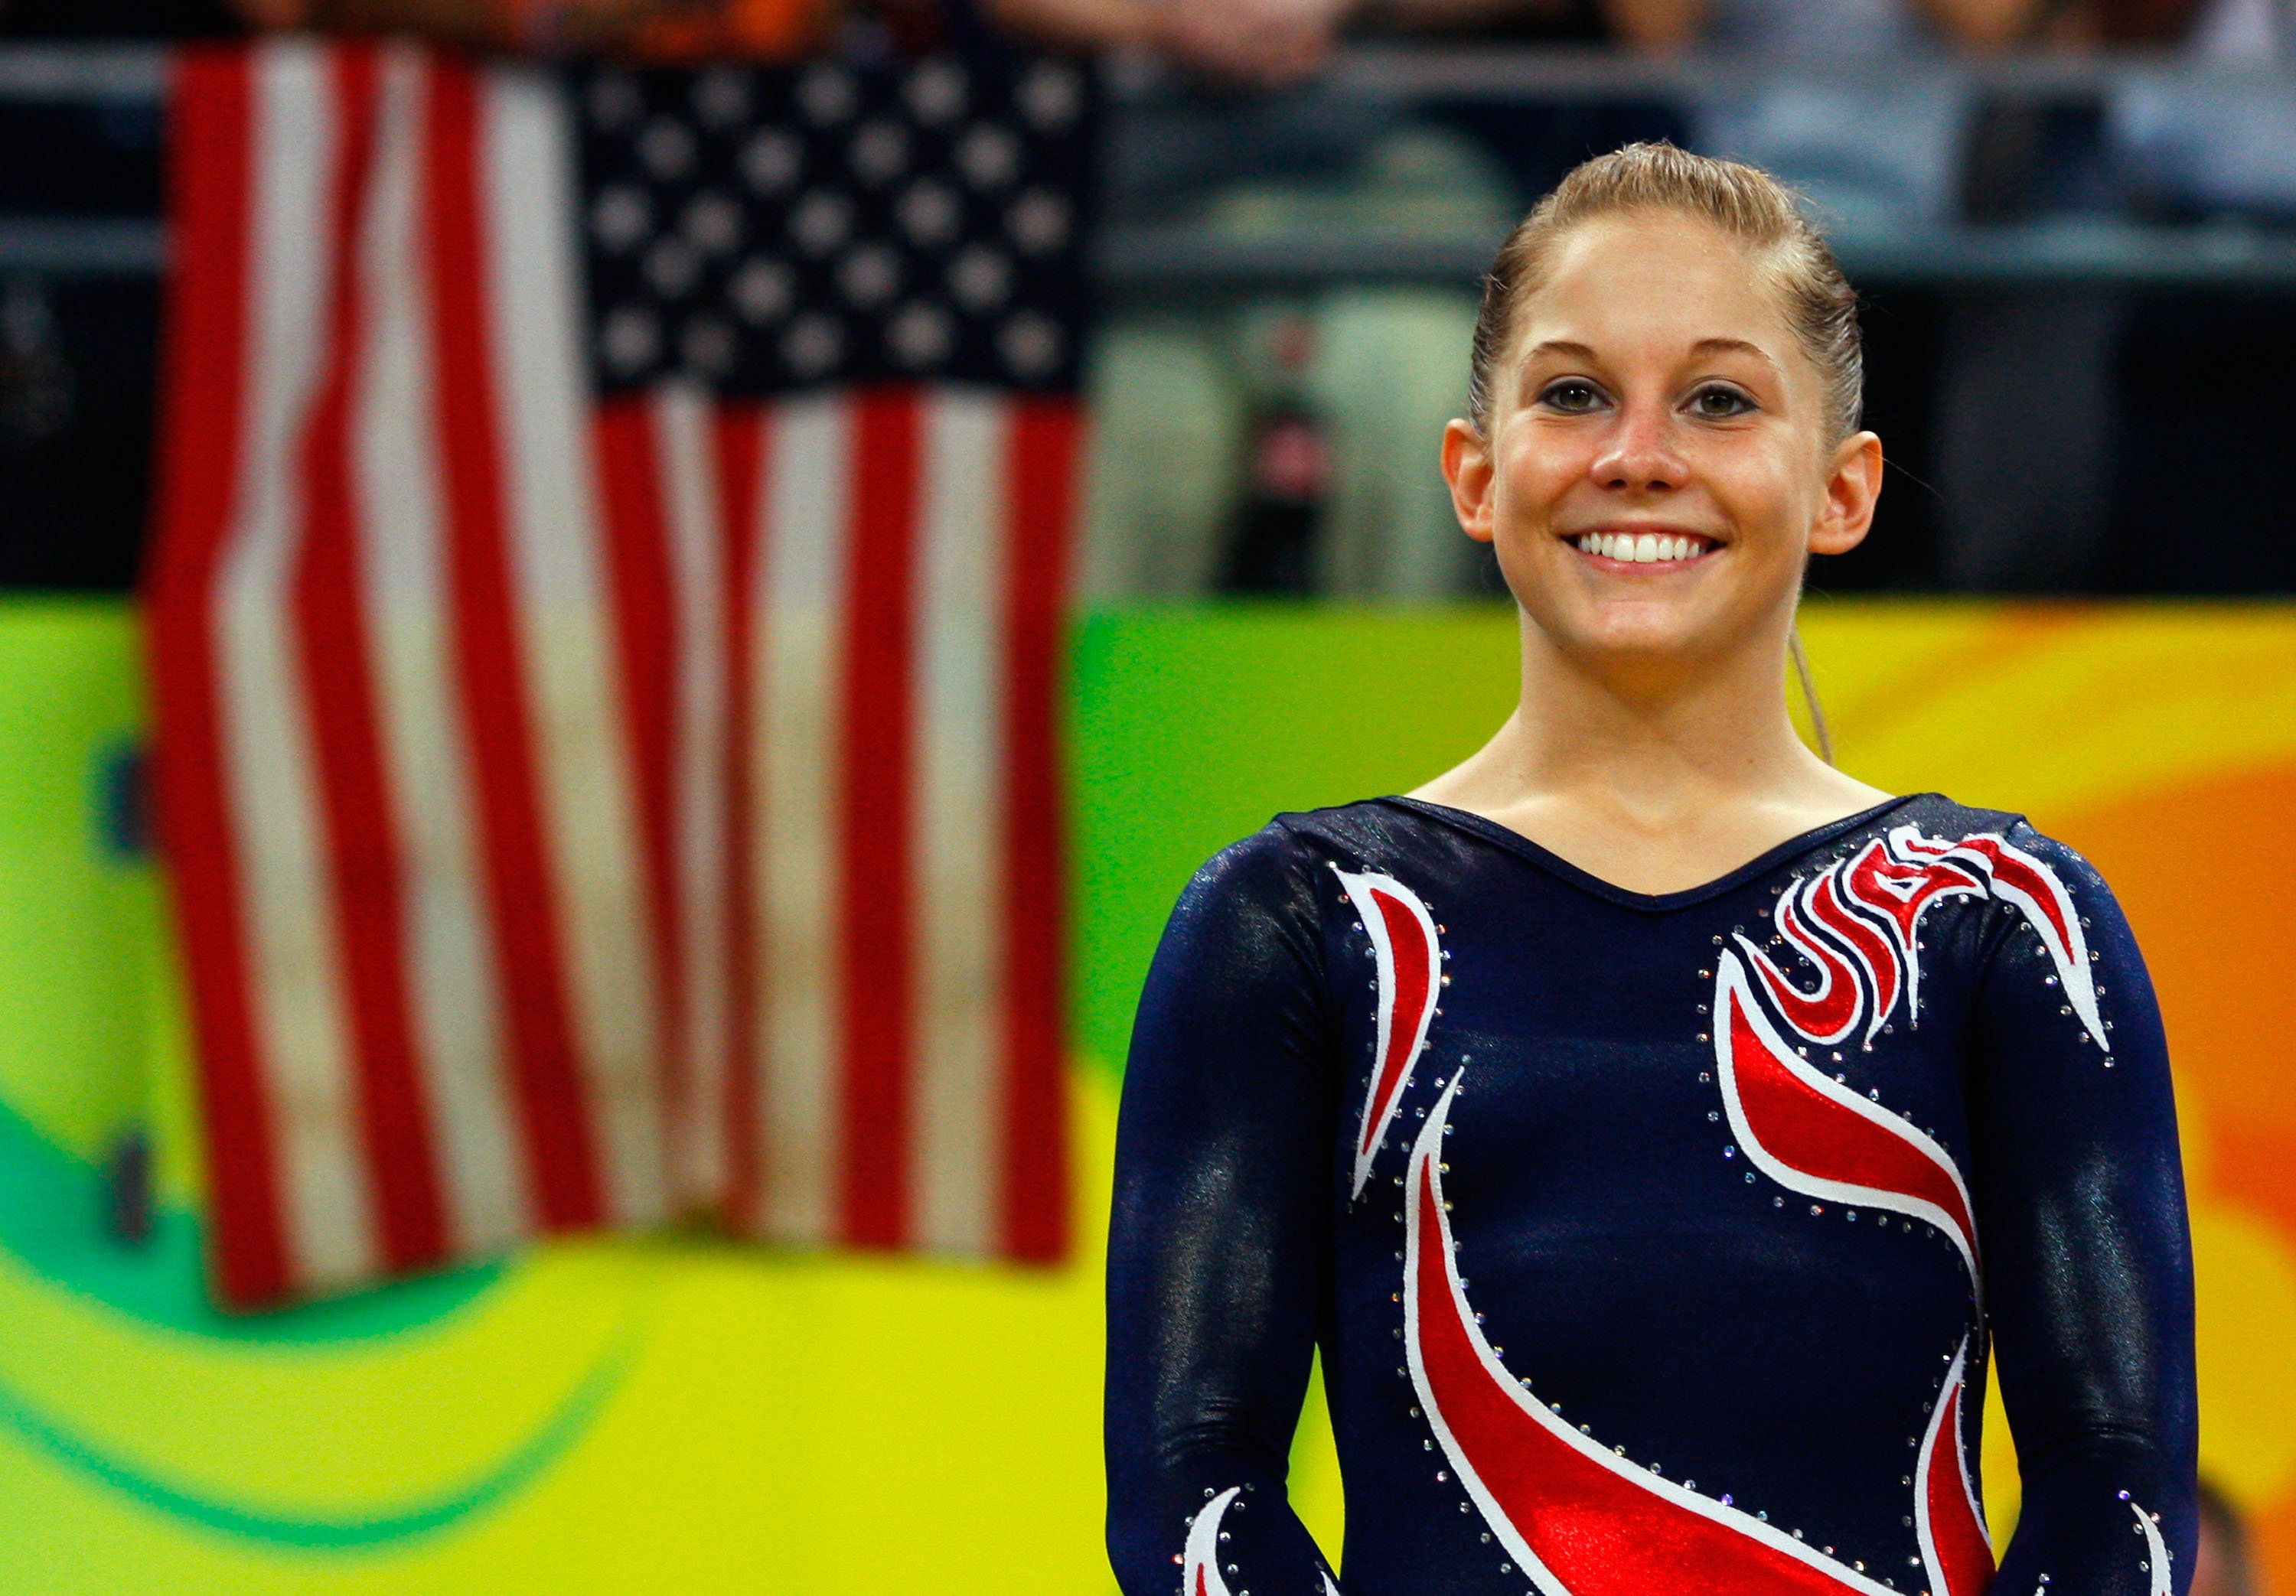 Olympic Gymnast Shawn Johnson Shares Her Heartbreaking Story of Miscarriage